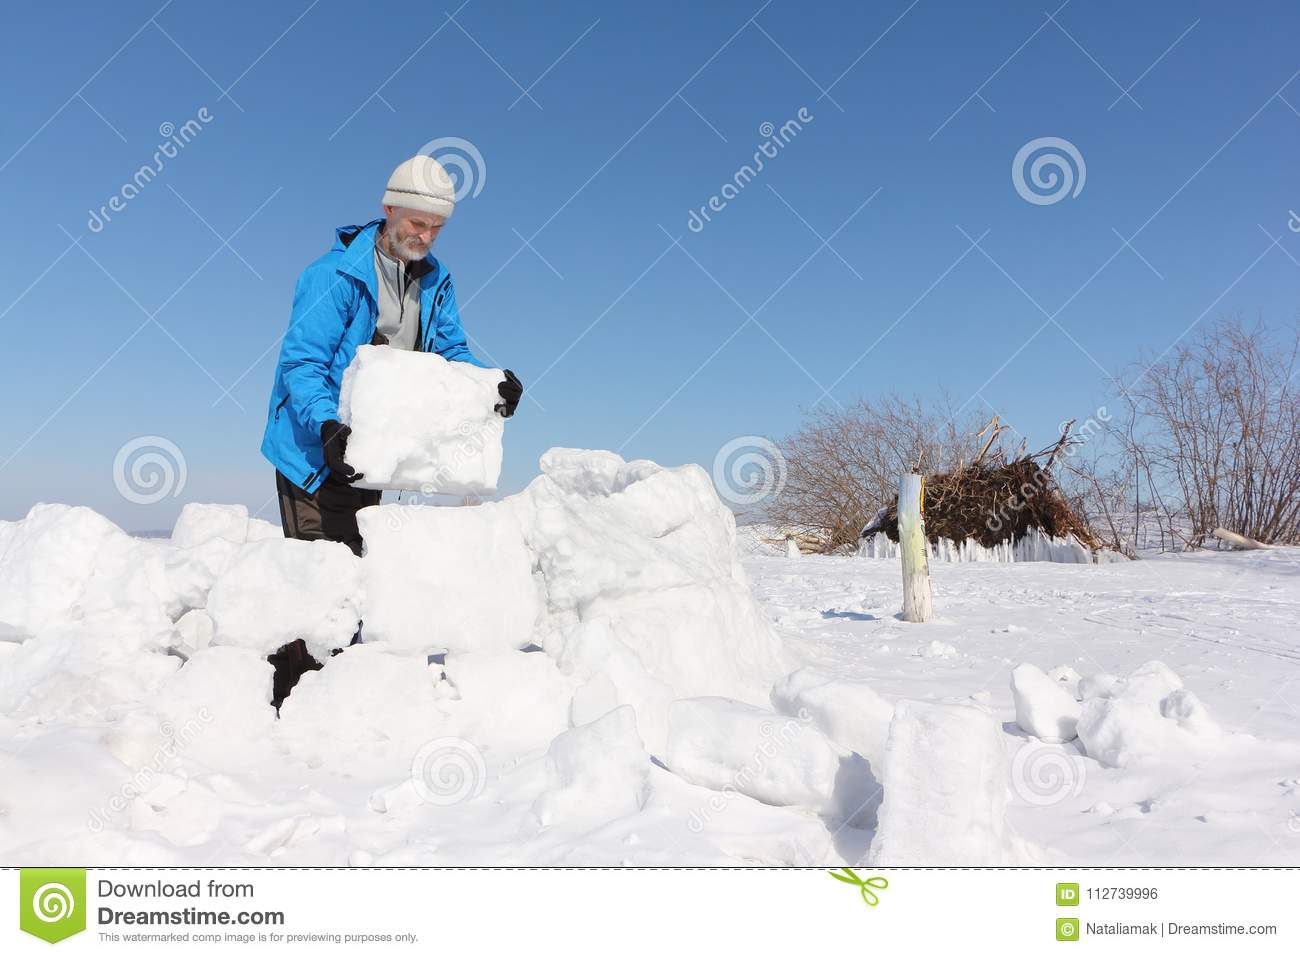 841cf0f5e Man In A Blue Jacket Building An Igloo On A Glade Stock Photo ...